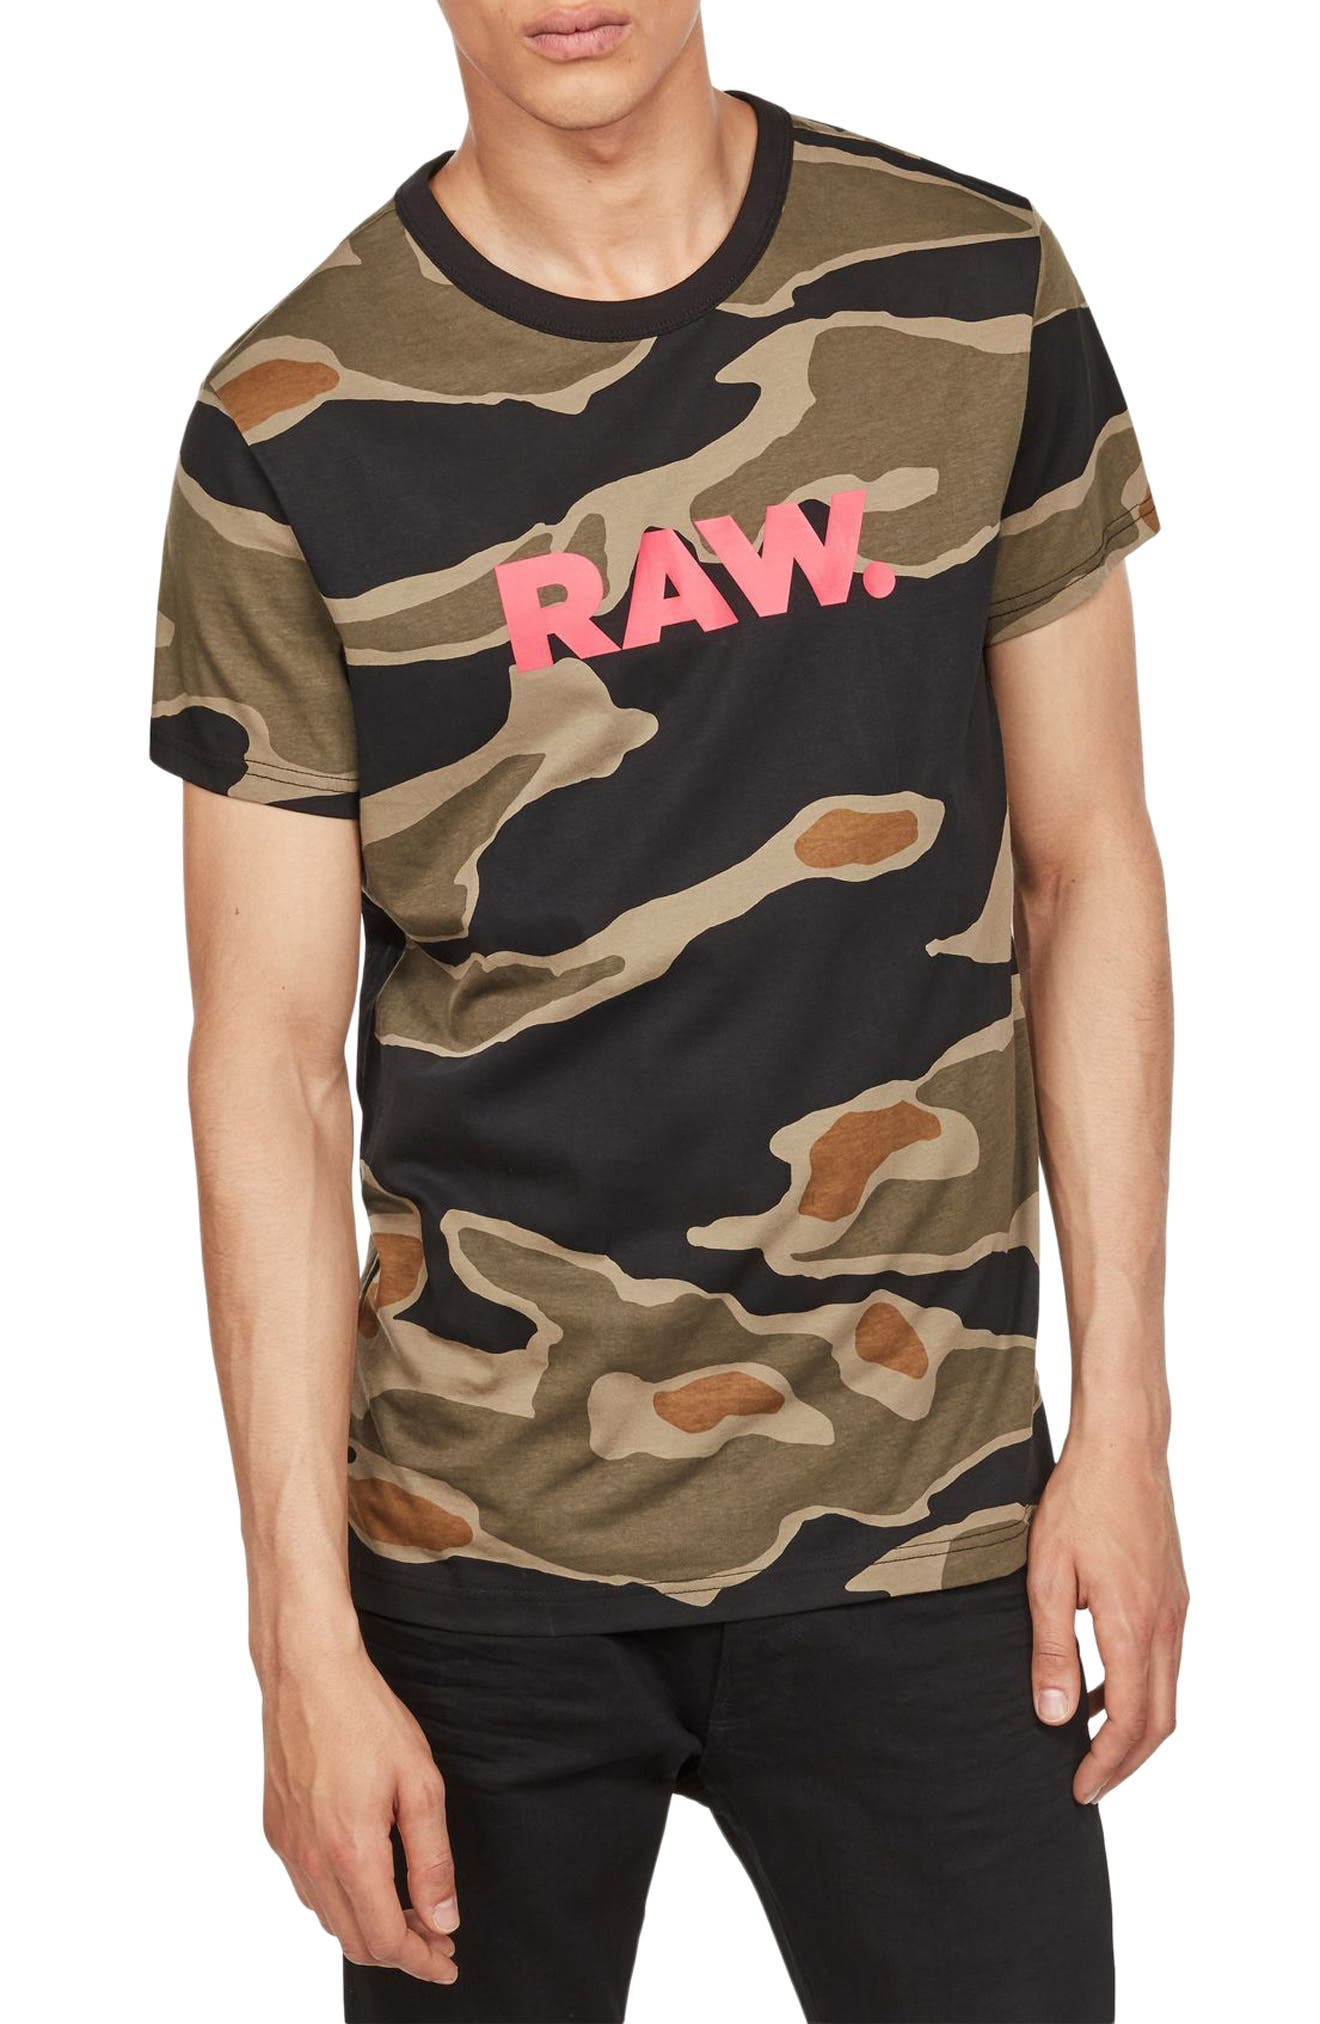 Alternate Image 1 Selected - G-Star Raw Tiger Camo Graphic T-Shirt